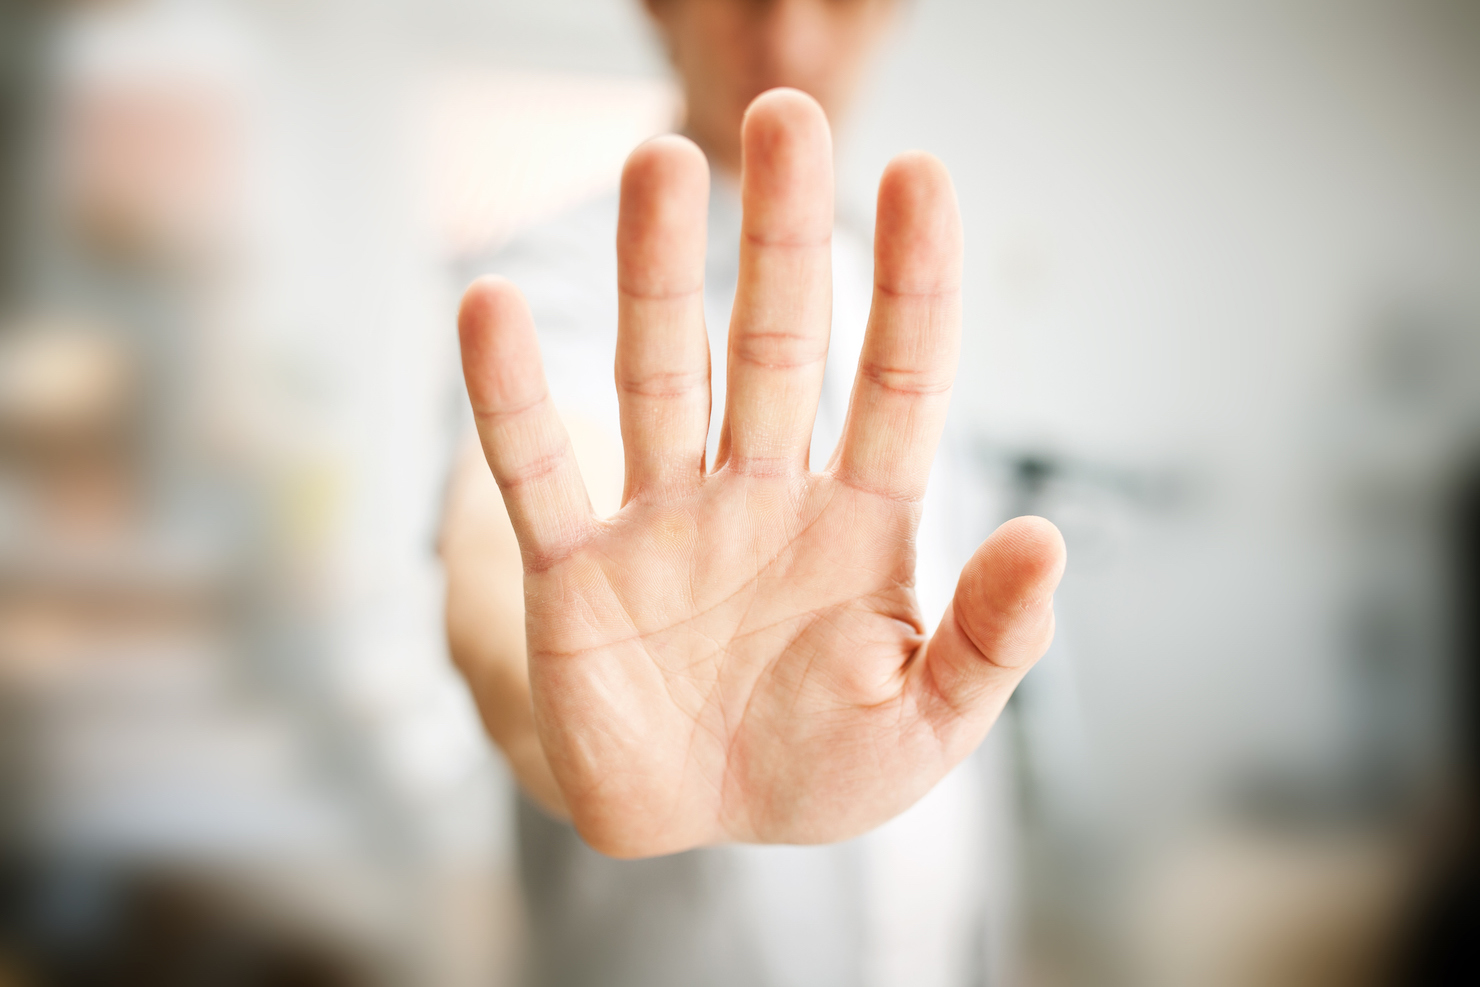 Man performing stop gesture with hand